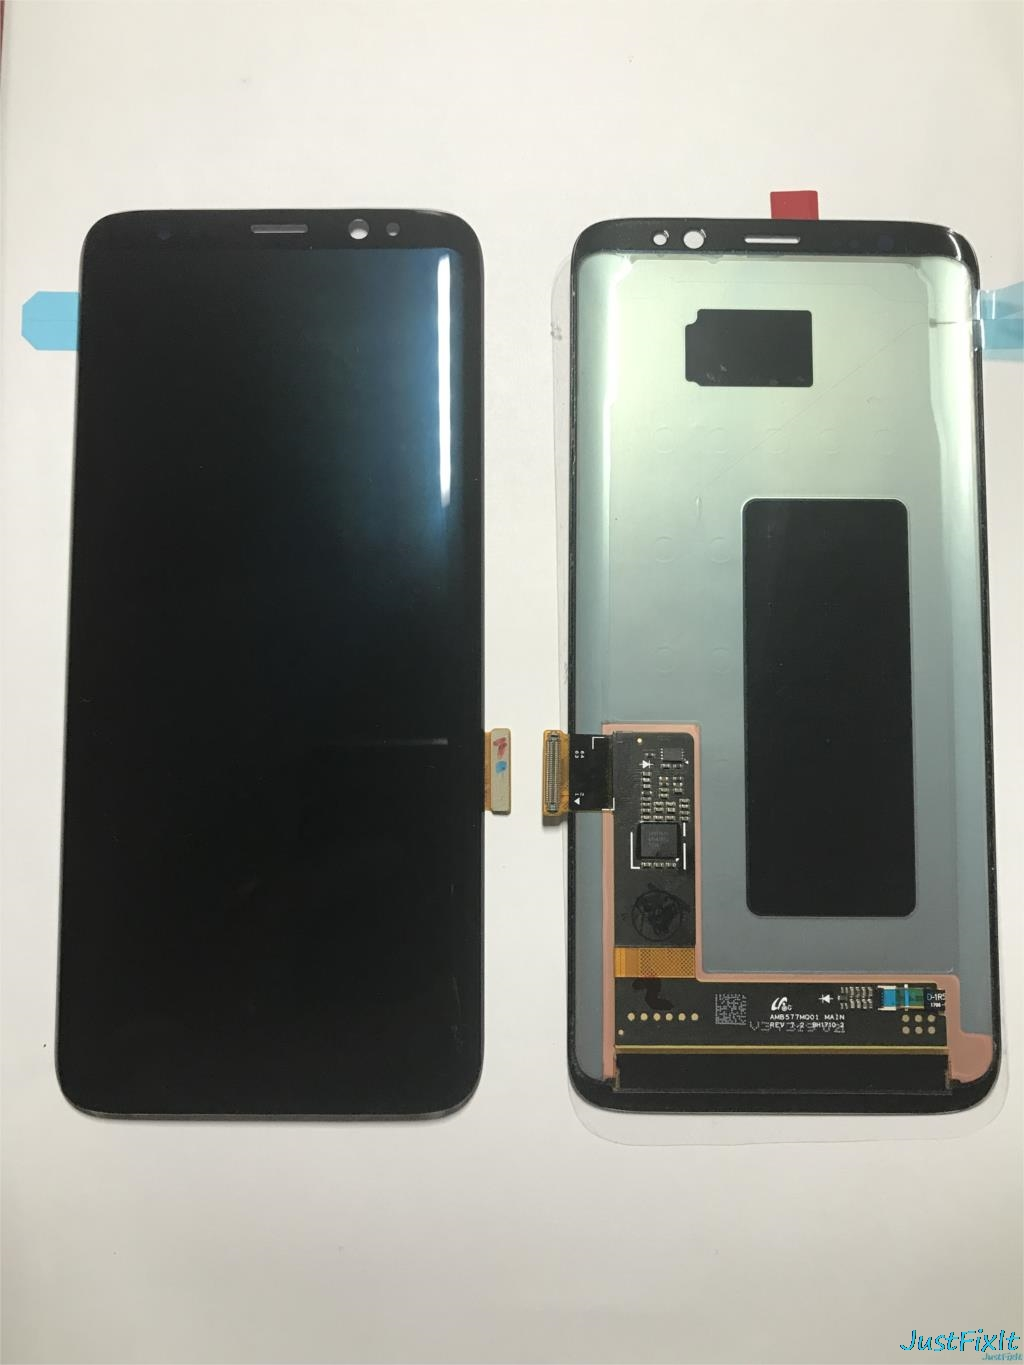 Original For Samsung Galaxy S8 G950F G950A G950FD Burn in Shadow lcd display with touch screen